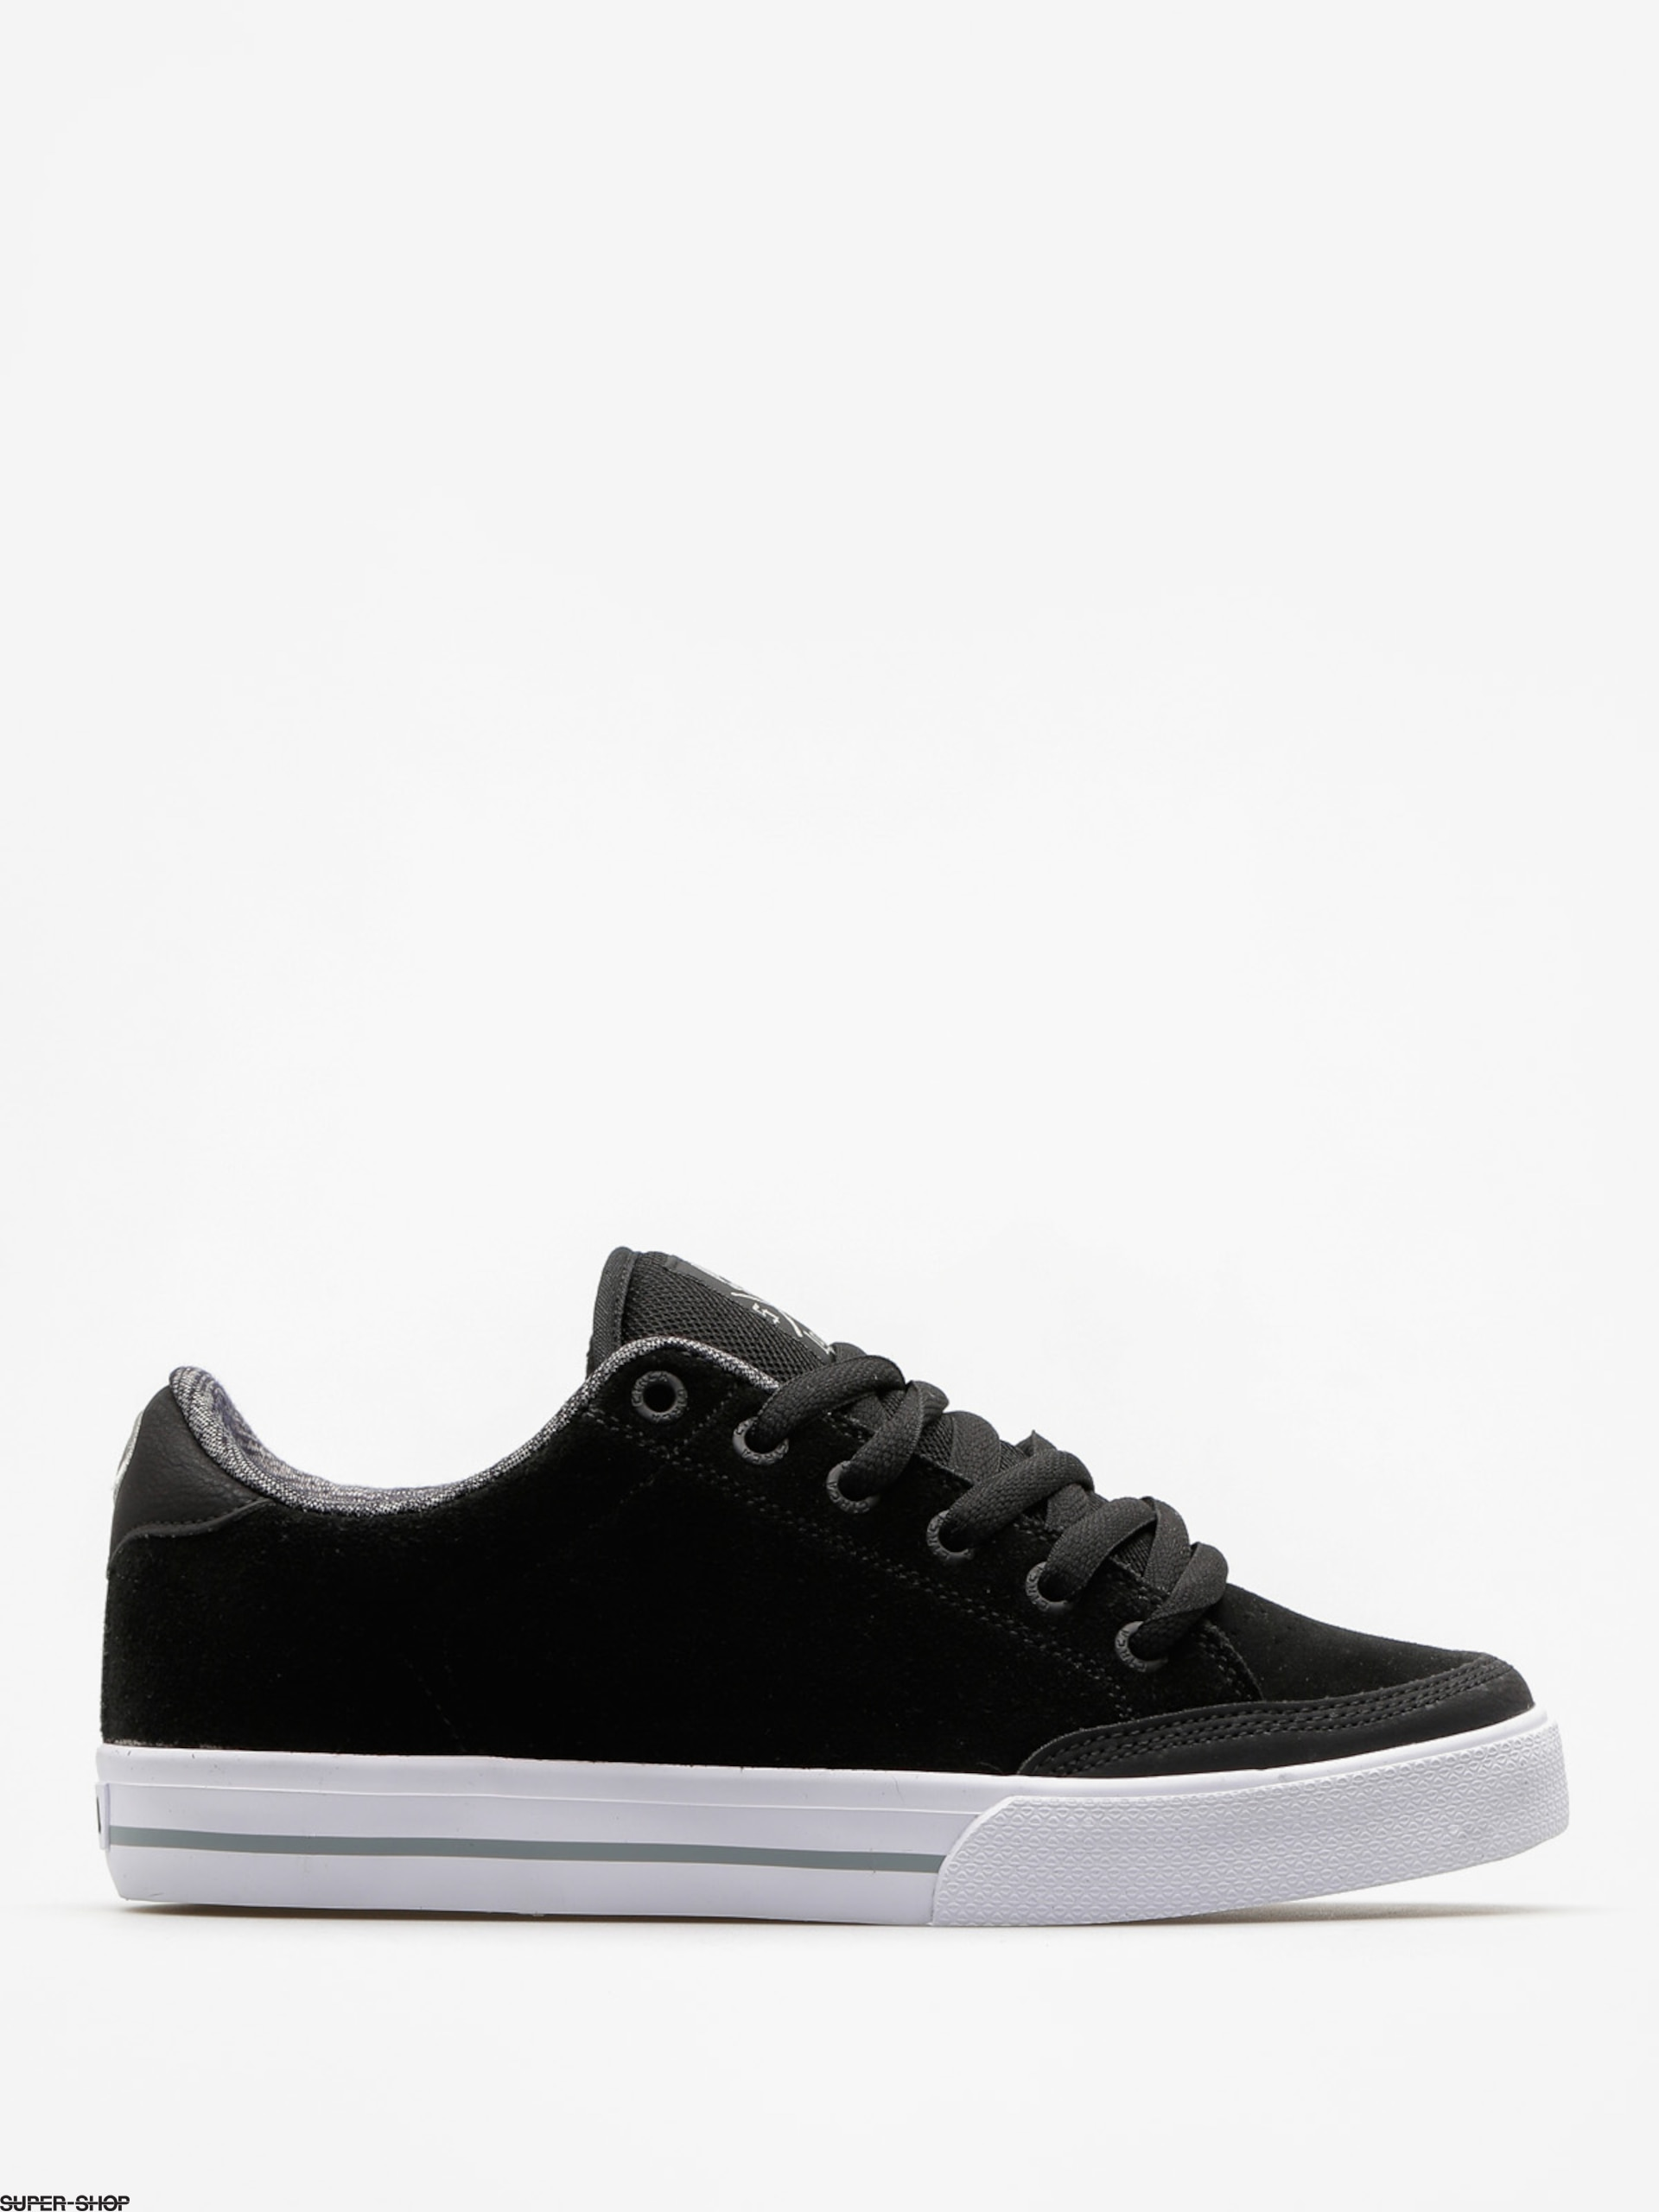 Circa Shoes Lopez 50 (black/paloma/white)